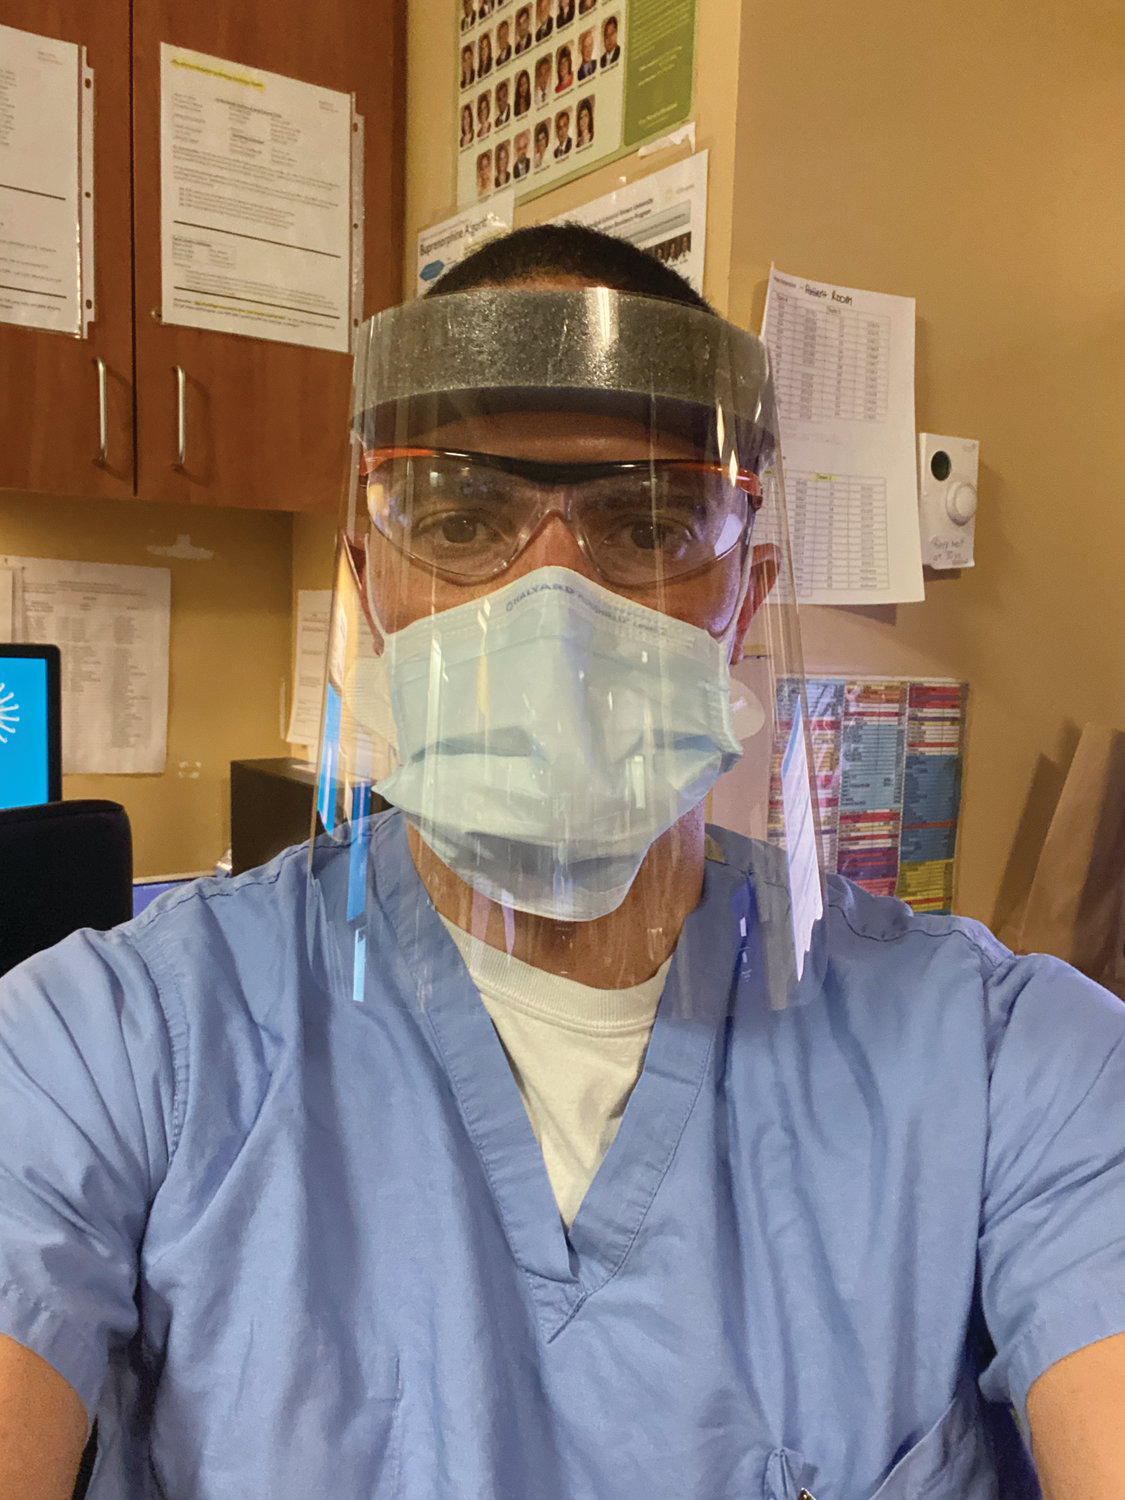 TAKING WORDS TO HEART:  Dr. Luke Messac, seen here geared up for work at Rhode Island Hospital, recently shared a 13-year-old email response from NIH Director Dr. Anthony Fauci. Fauci praised Messac's thesis and said he was confident he would go on to have a successful career.